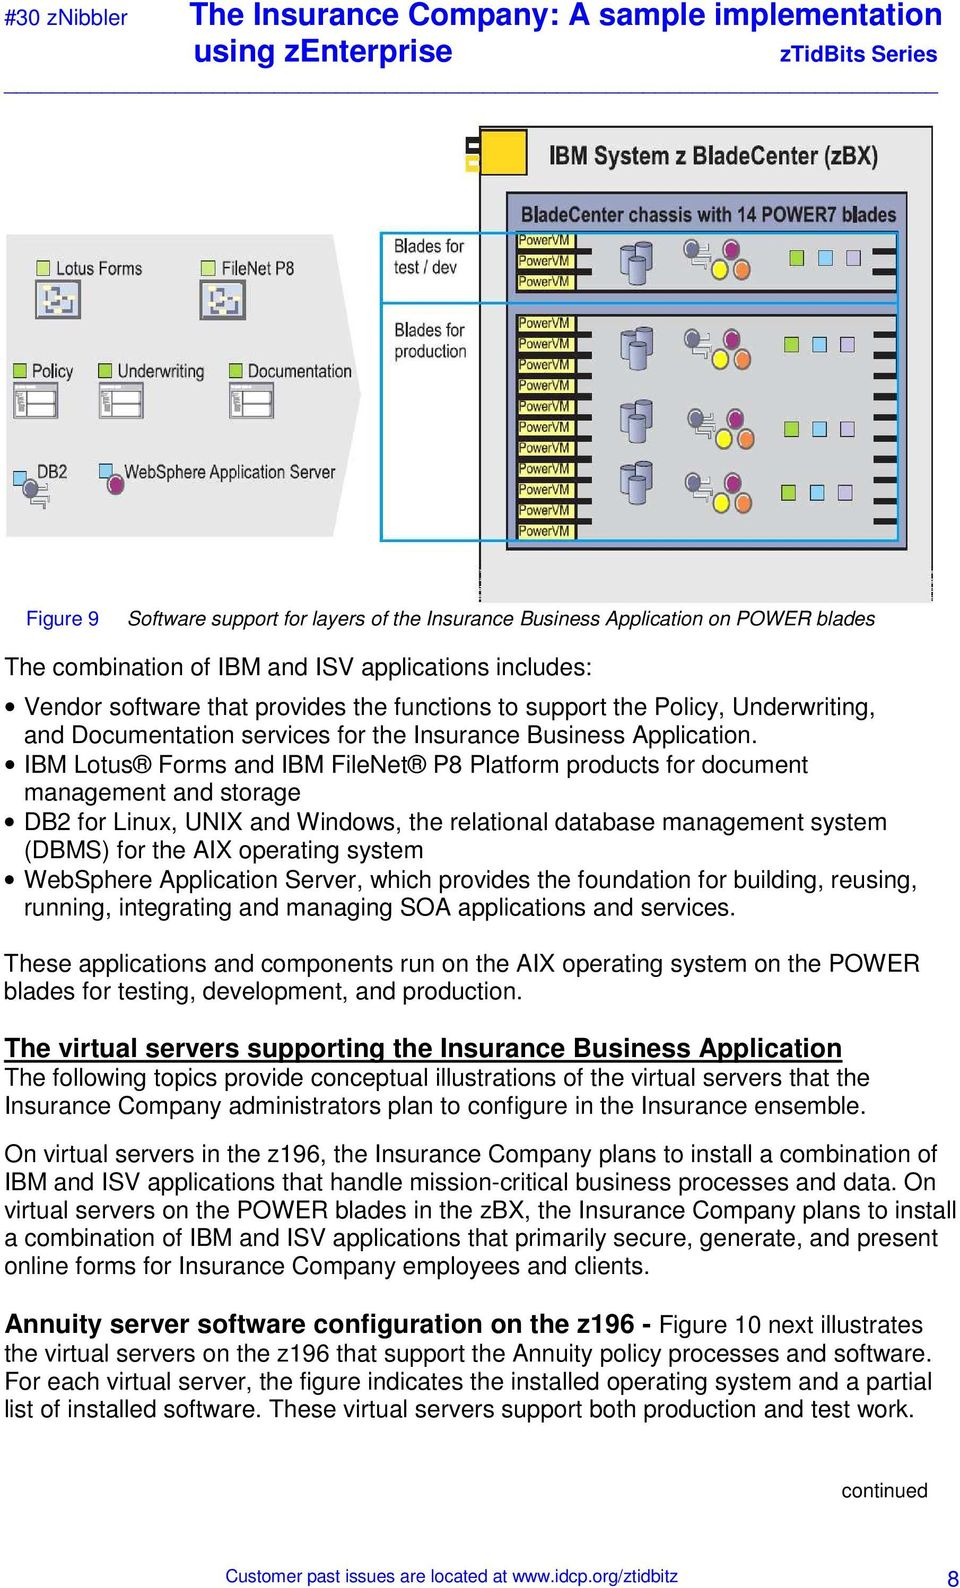 IBM Lotus Forms and IBM FileNet P8 Platform products for document management and storage DB2 for Linux, UNIX and Windows, the relational database management system (DBMS) for the AIX operating system